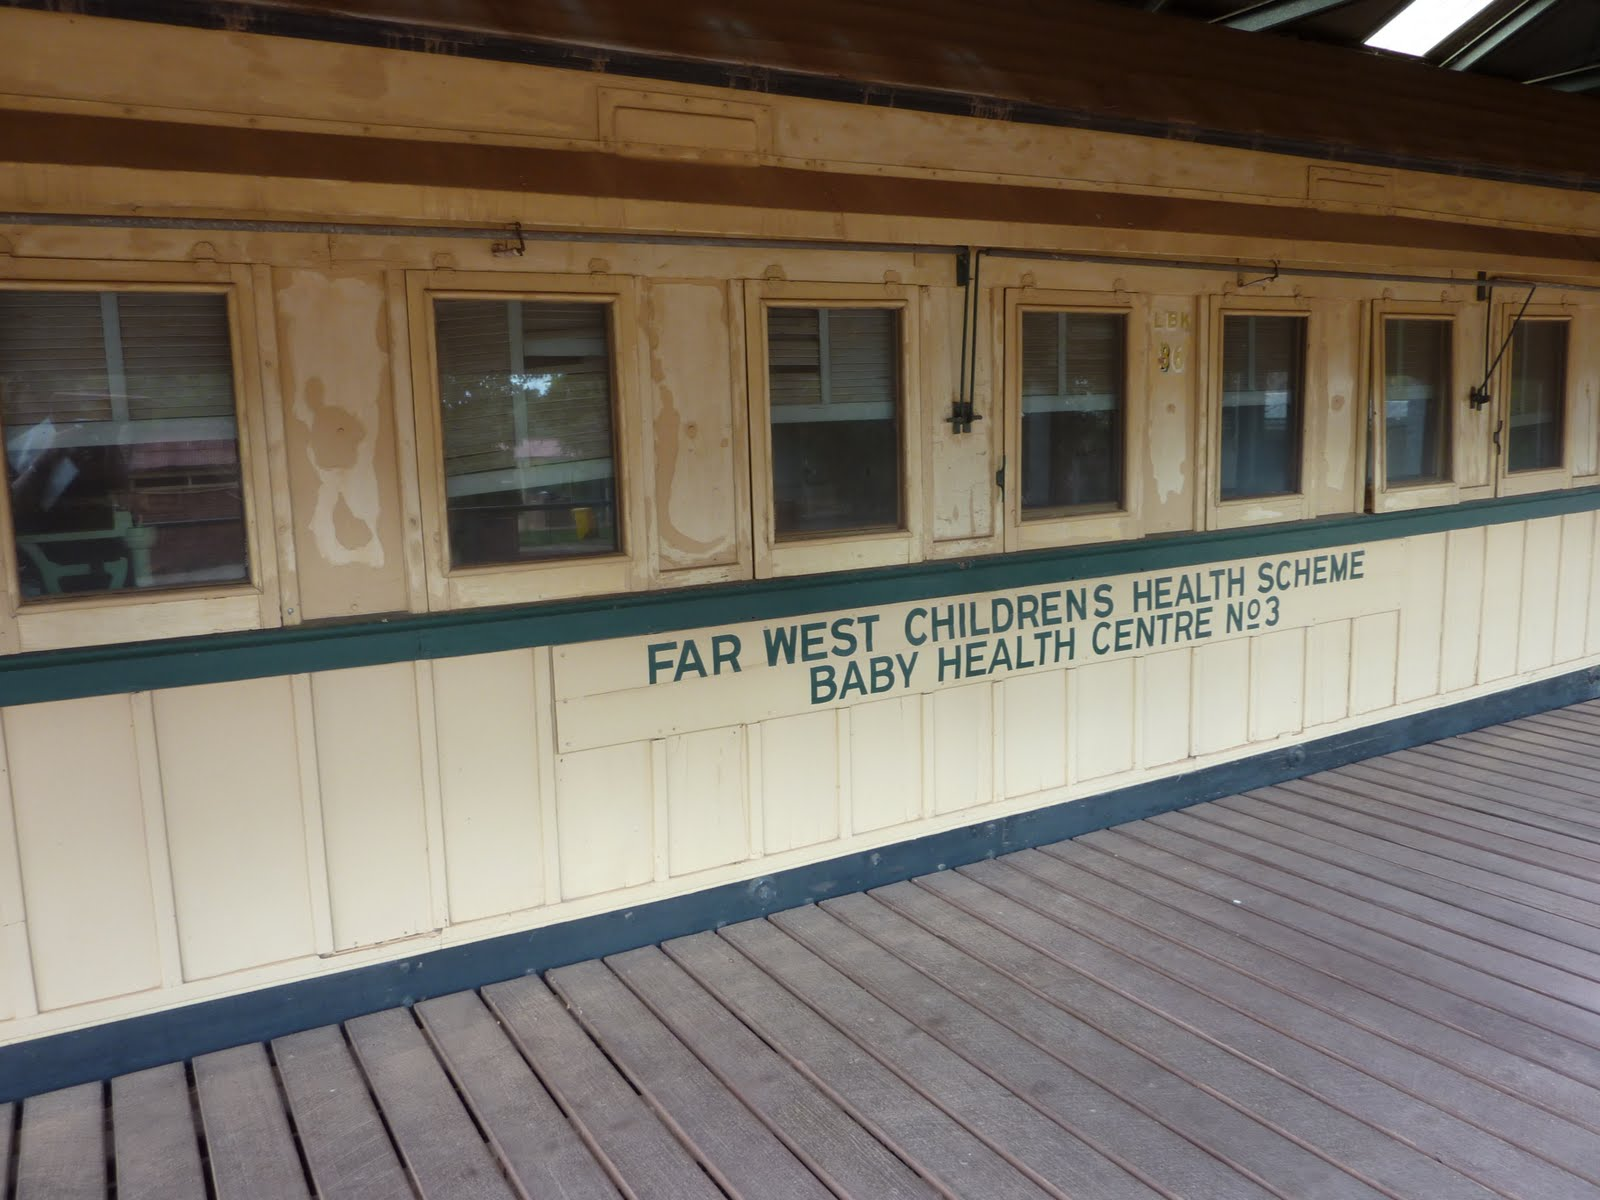 Snodge's subjective travel blog: Silver City Sojourn - Day 2 - West